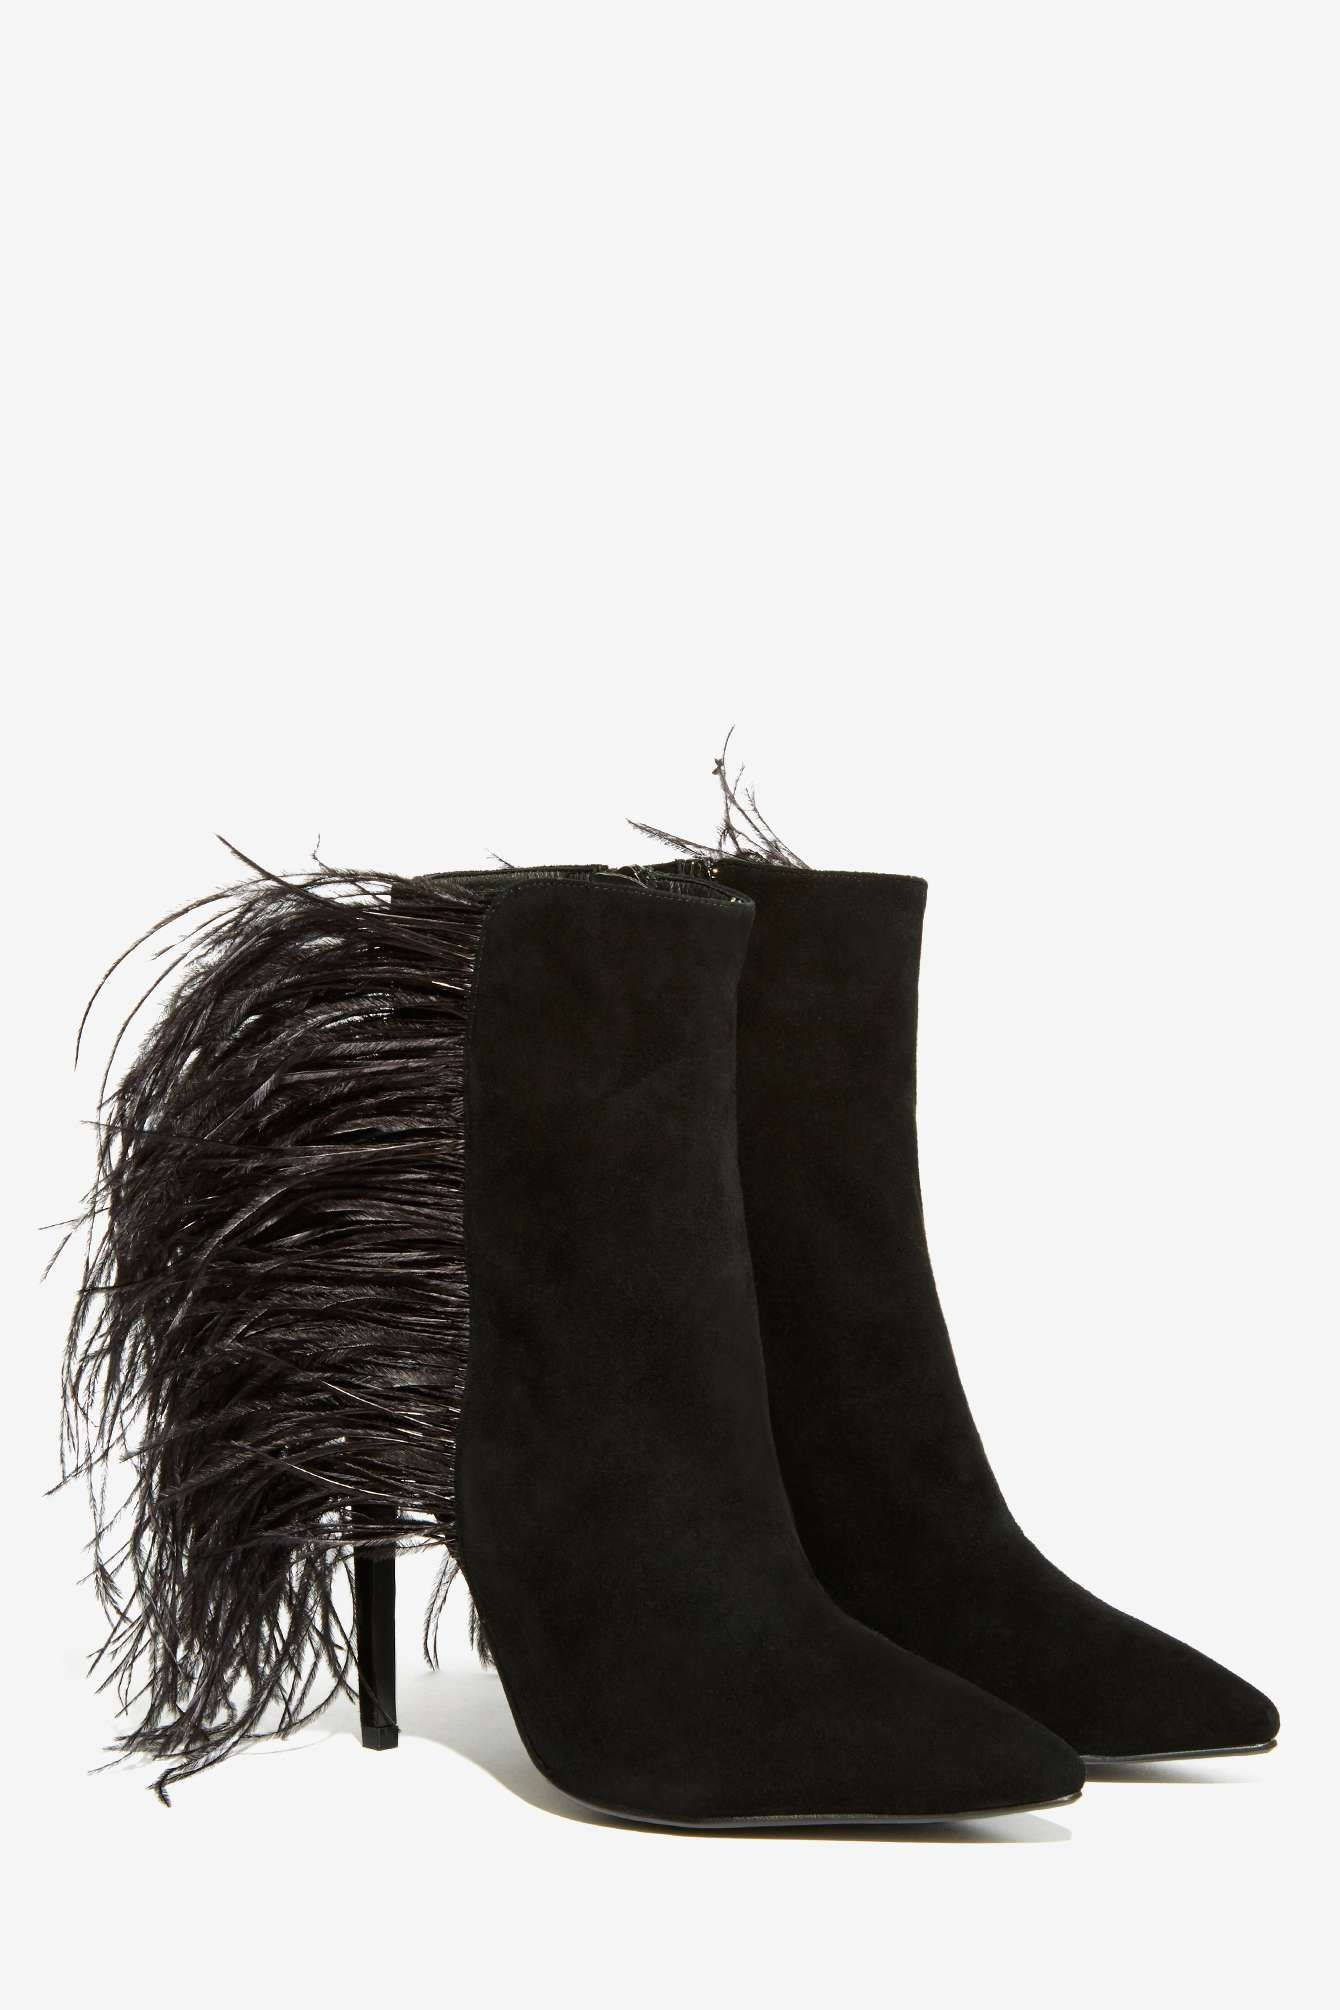 Jeffrey Campbell Vain Feather Bootie | Shop Shoes at Nasty Gal!